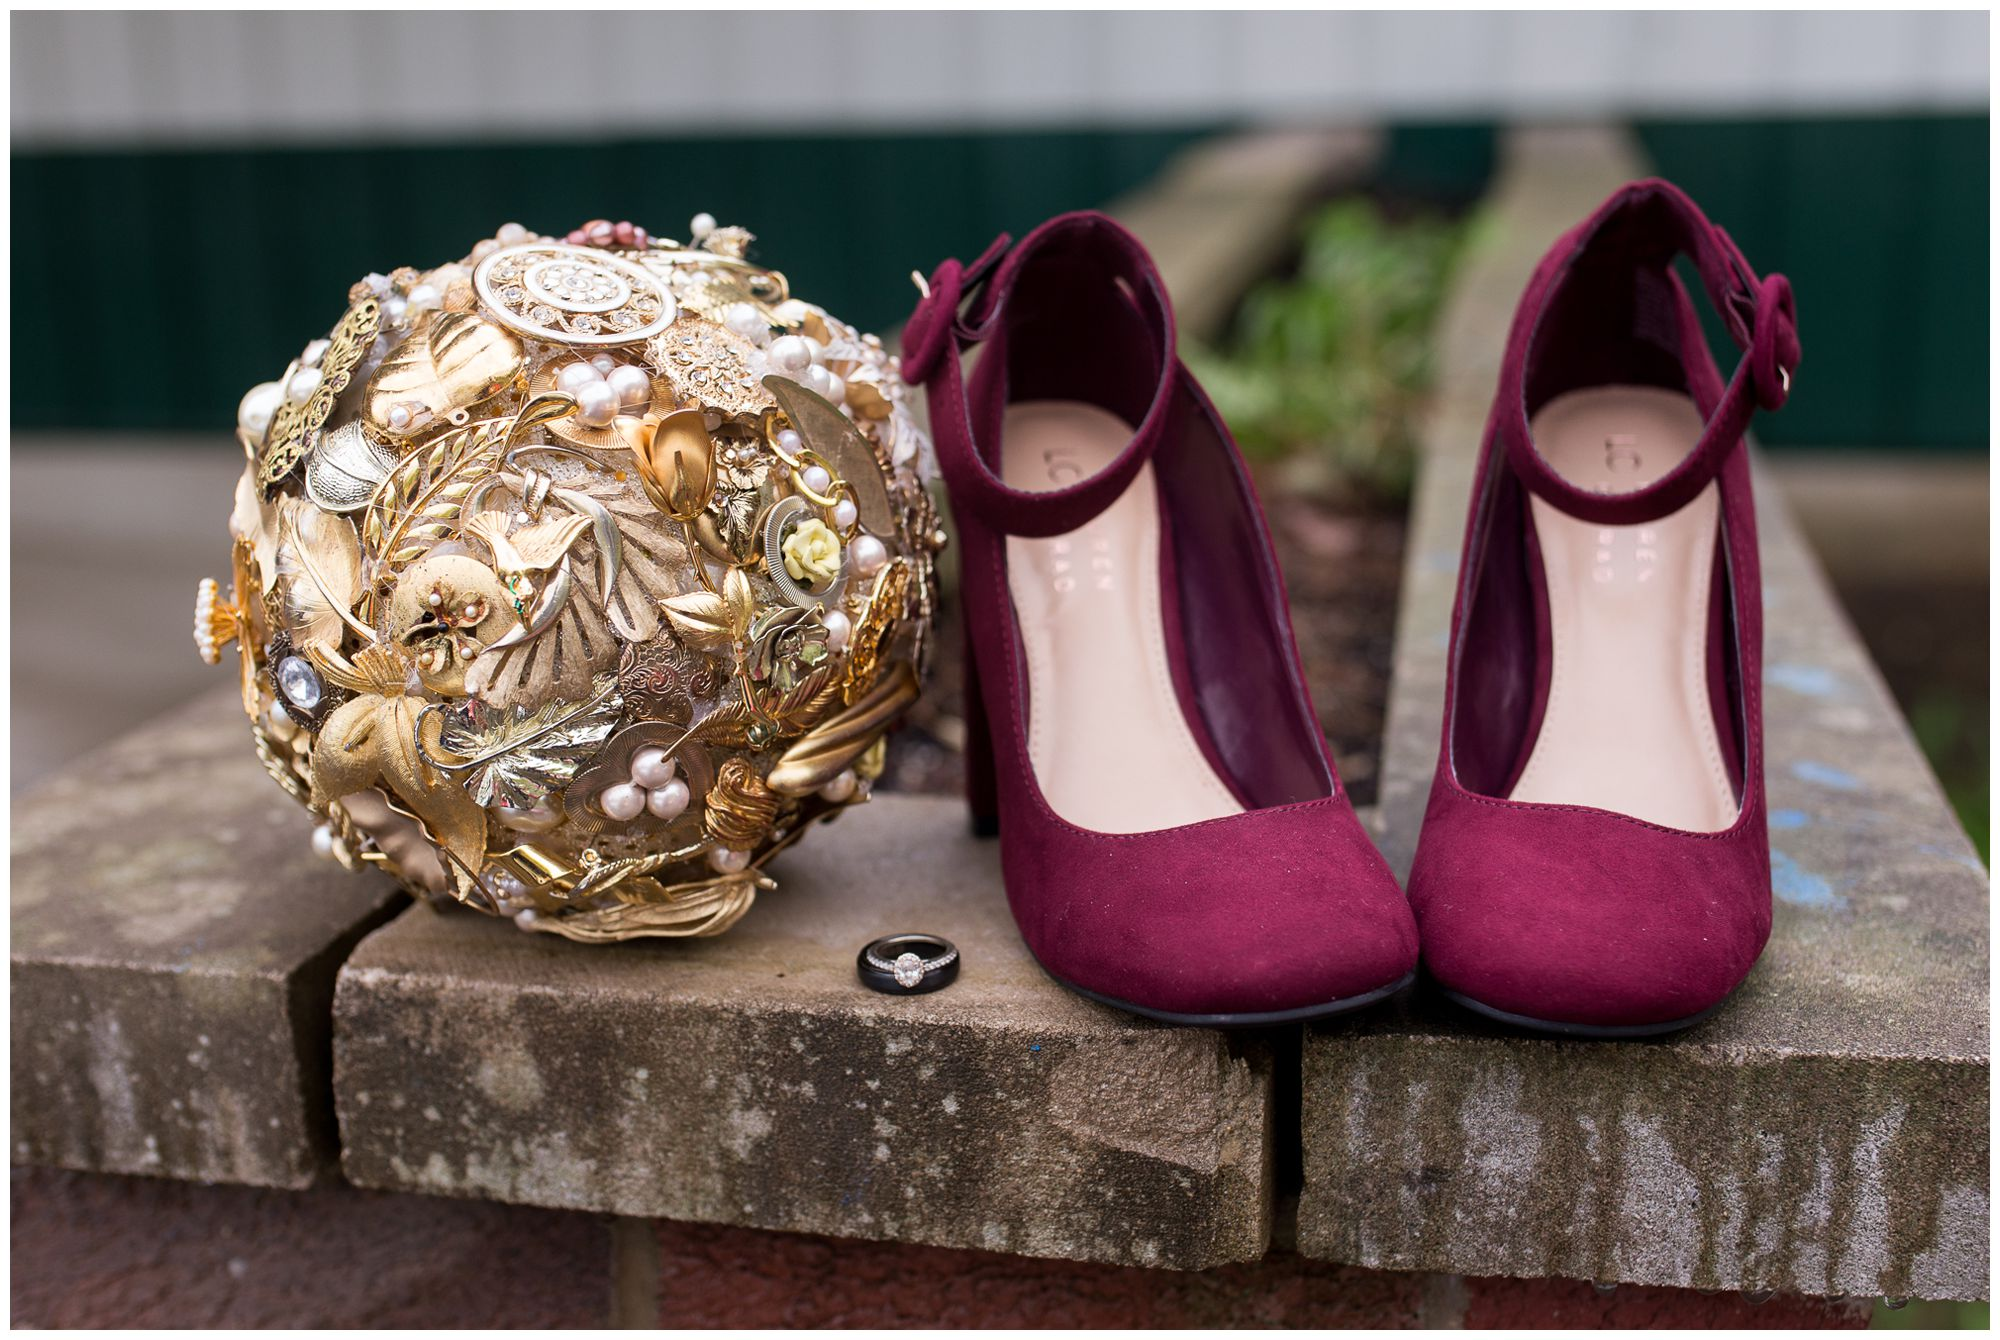 bride and groom rings between burgundy bride dress shoes and broach bouquet at Peru Indiana wedding